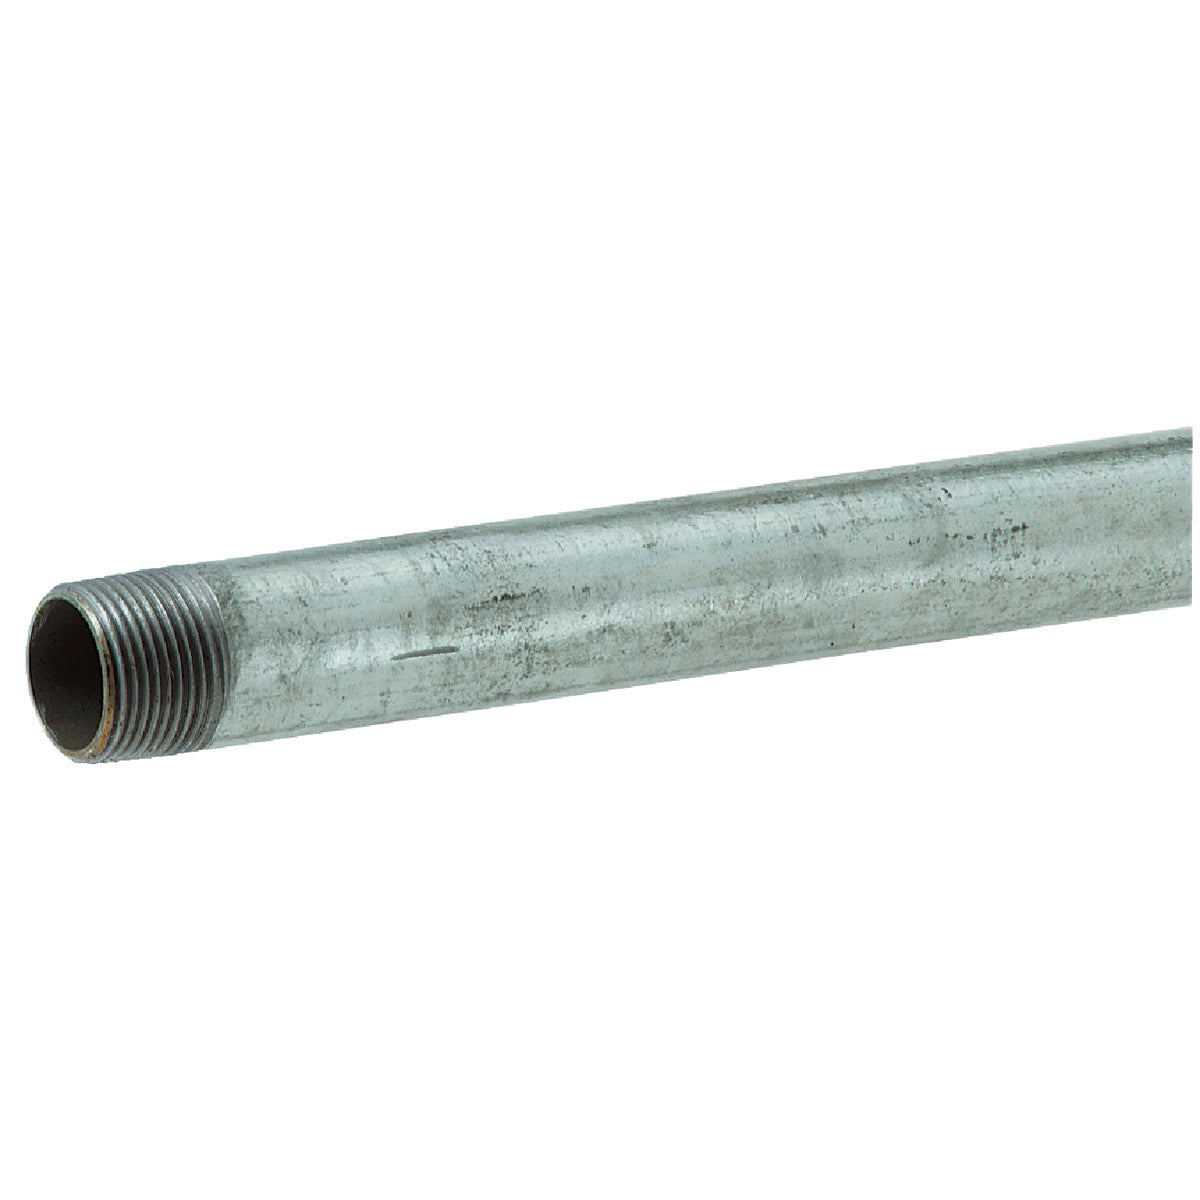 1X60 GALV RDI-CT PIPE - 1X60 by Southland Pipe Nippl